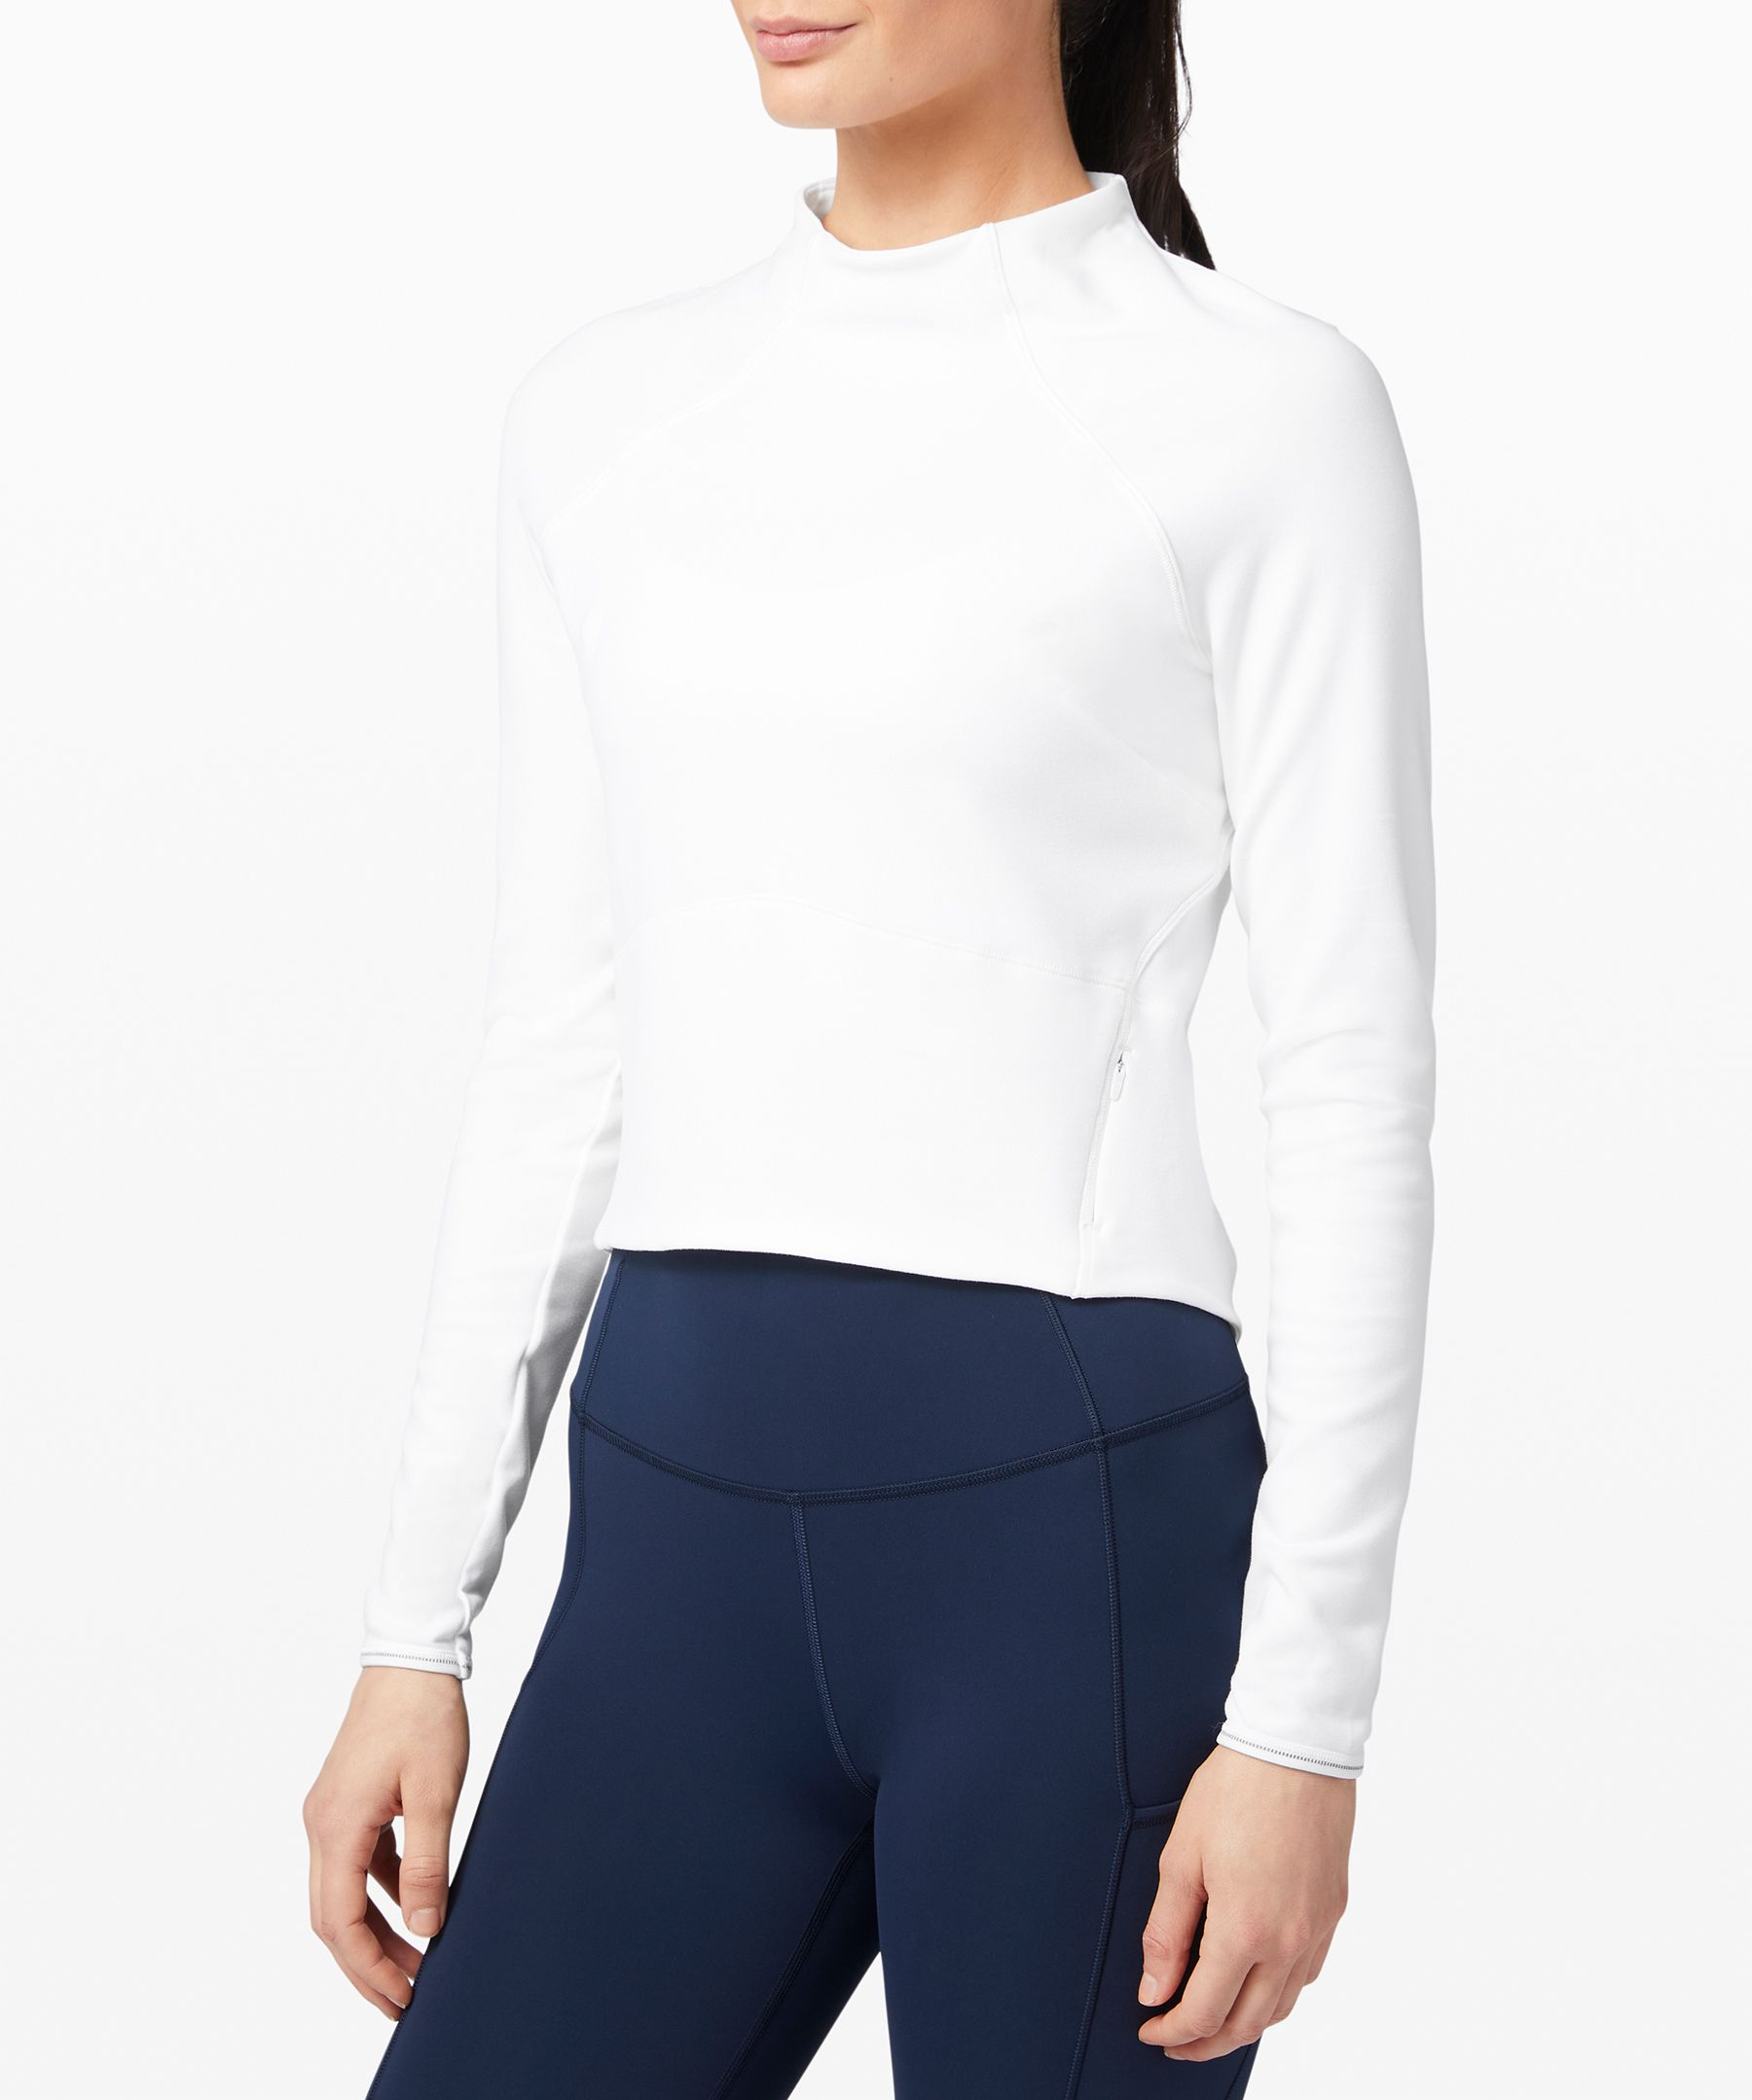 Hill And Valley Mock Neck *Crop Top